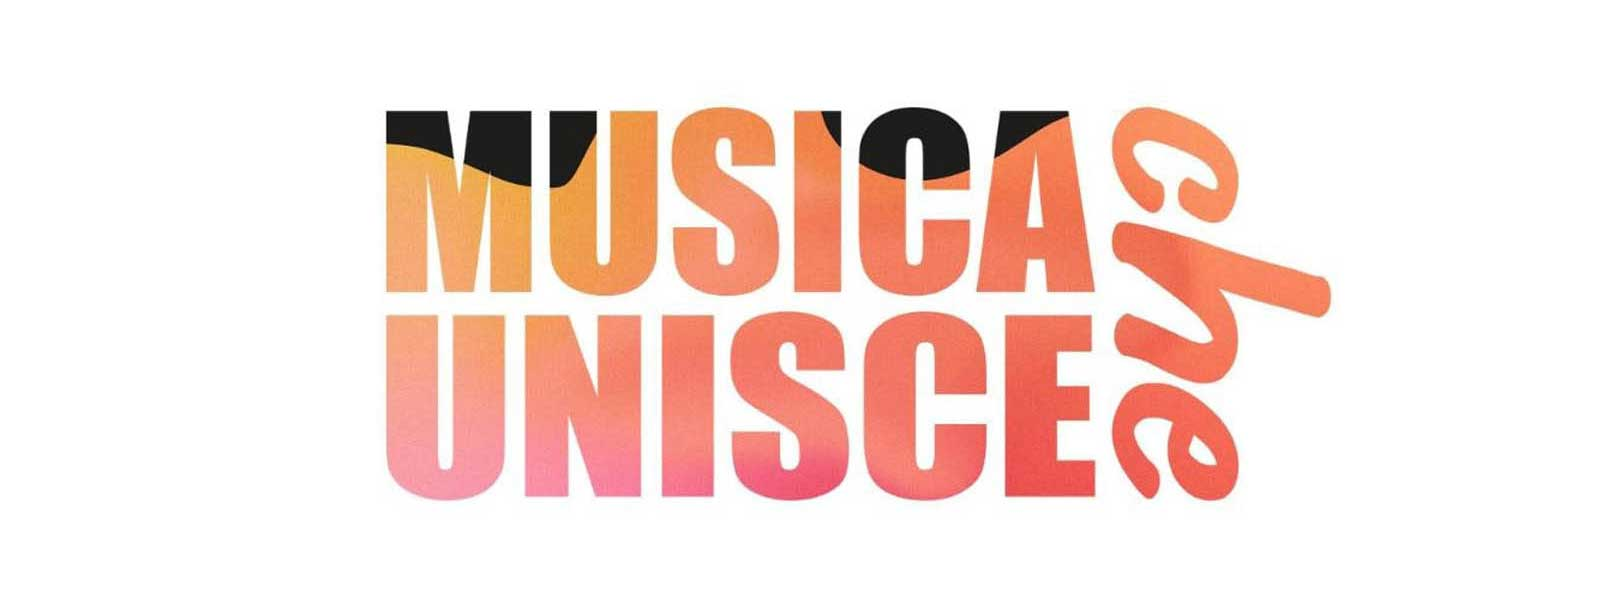 TOGETHER WE CAN la musica che unisce i nostri cuori